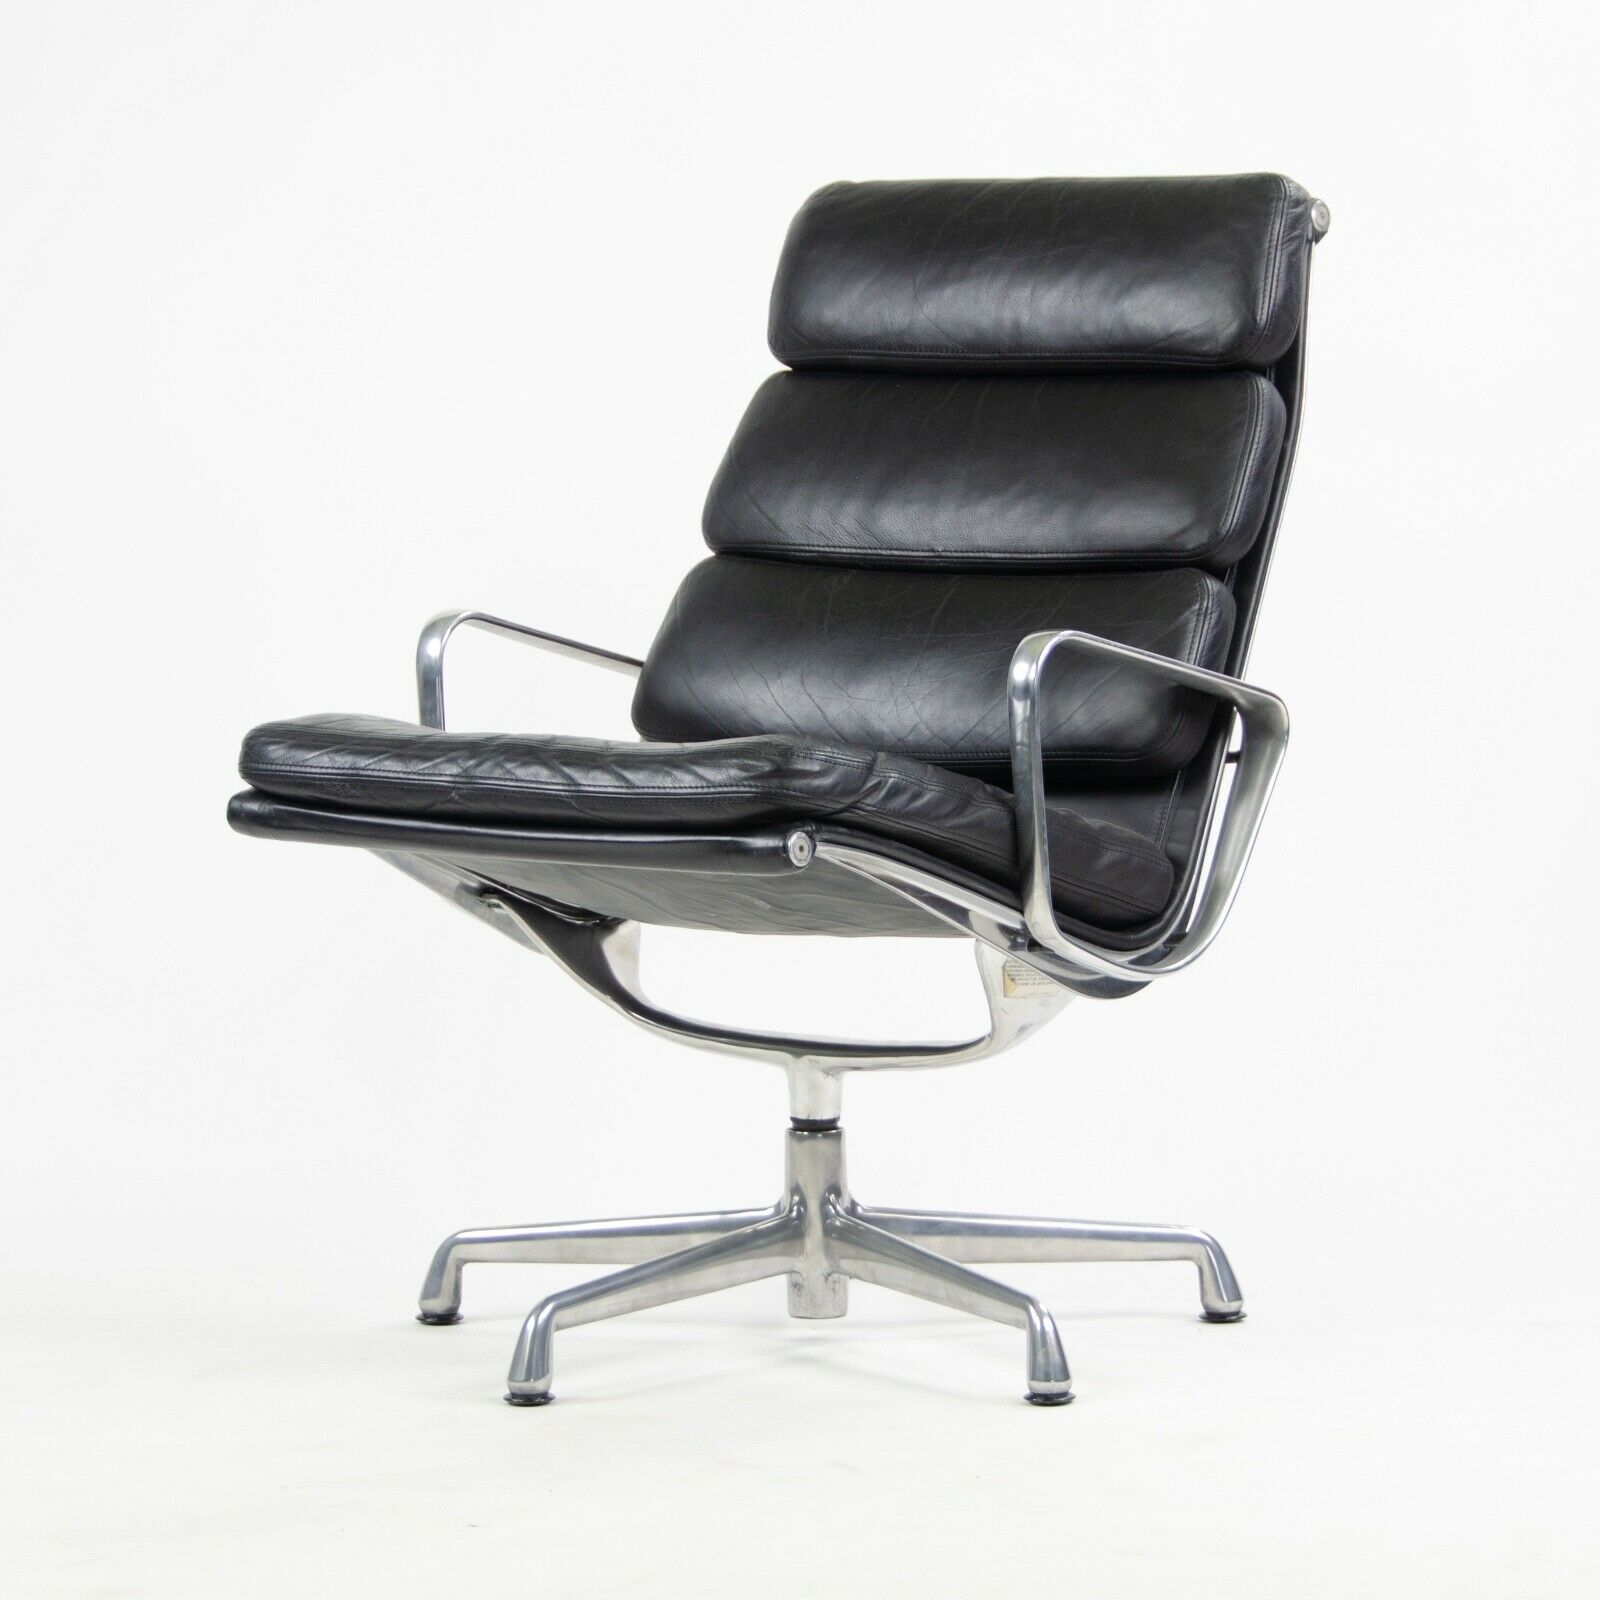 Eames Chair Herman Miller Ebay Details About Eames Herman Miller Soft Pad Aluminum Group Lounge Chair Black Leather 2x Avail